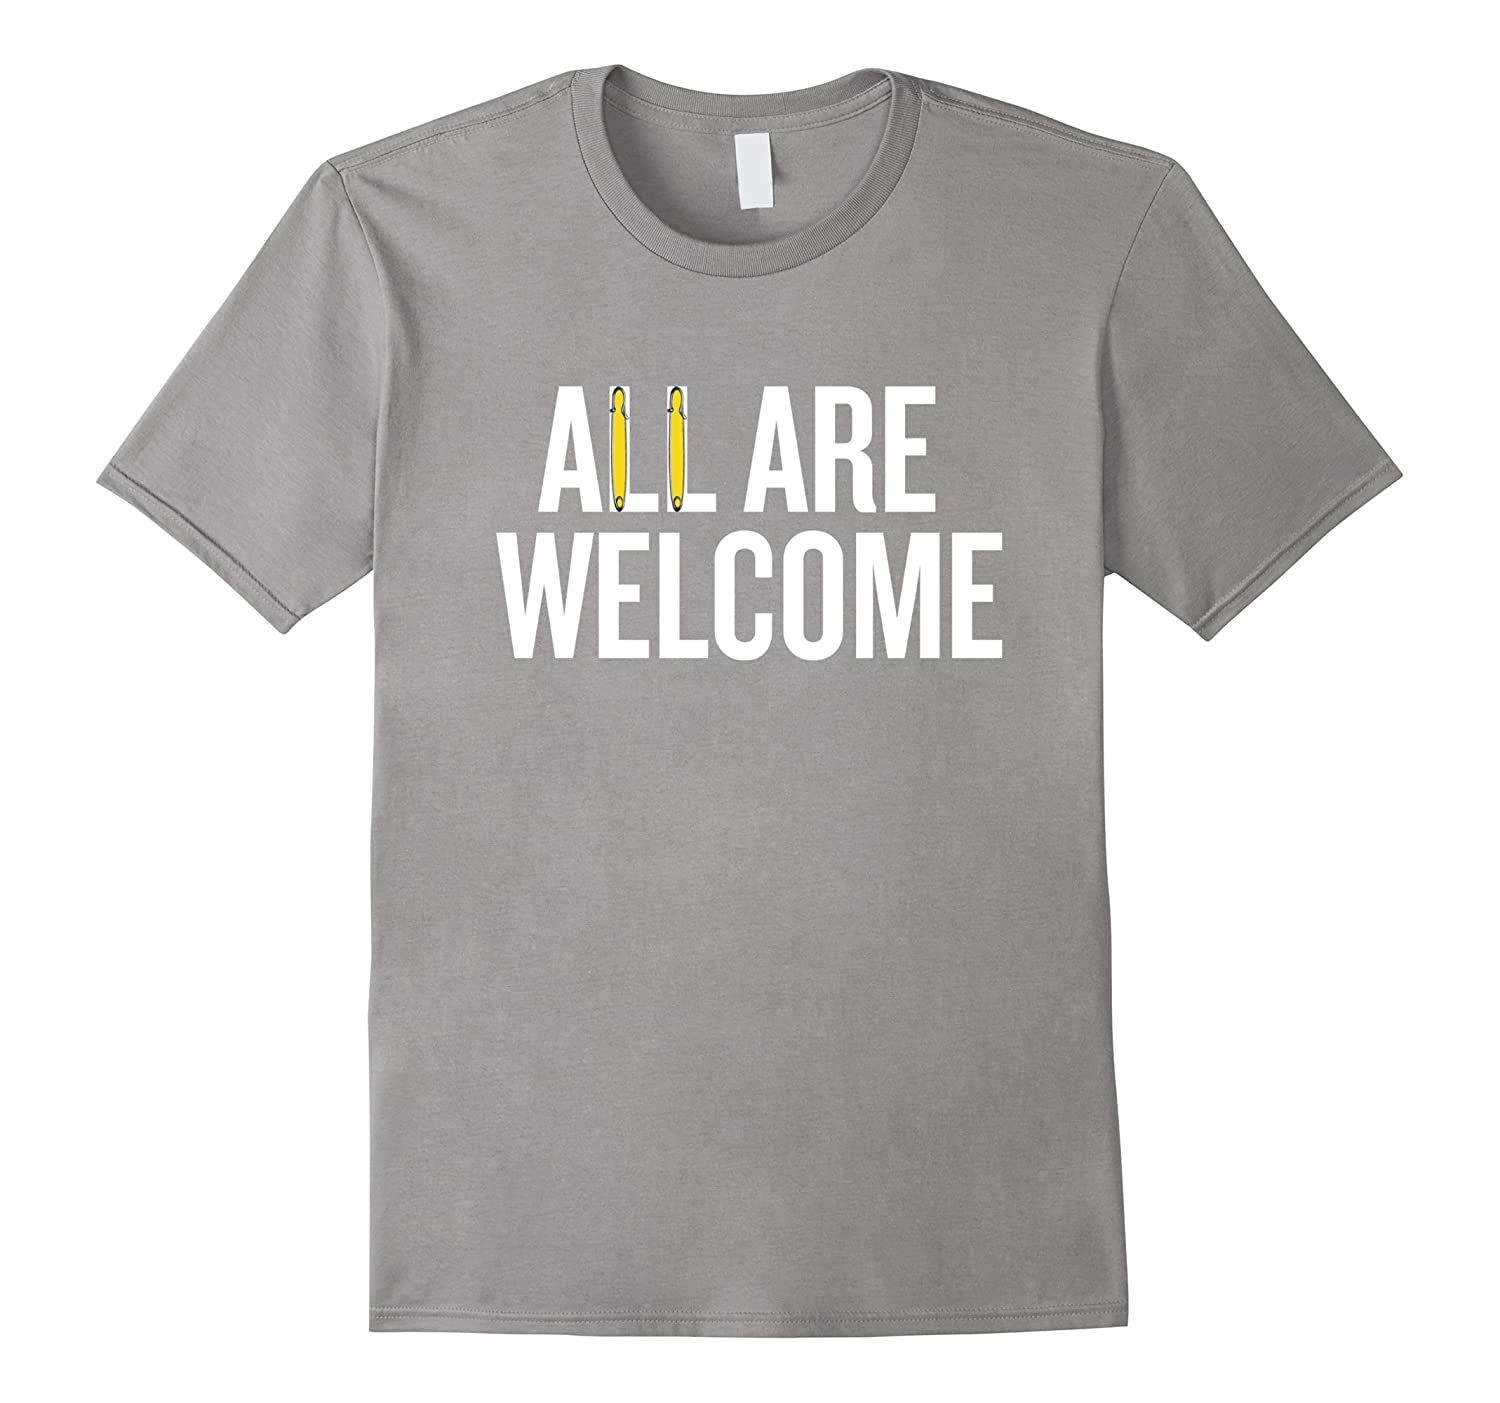 All are Welcome T-shirt with yellow safety pin graphic-T-Shirt